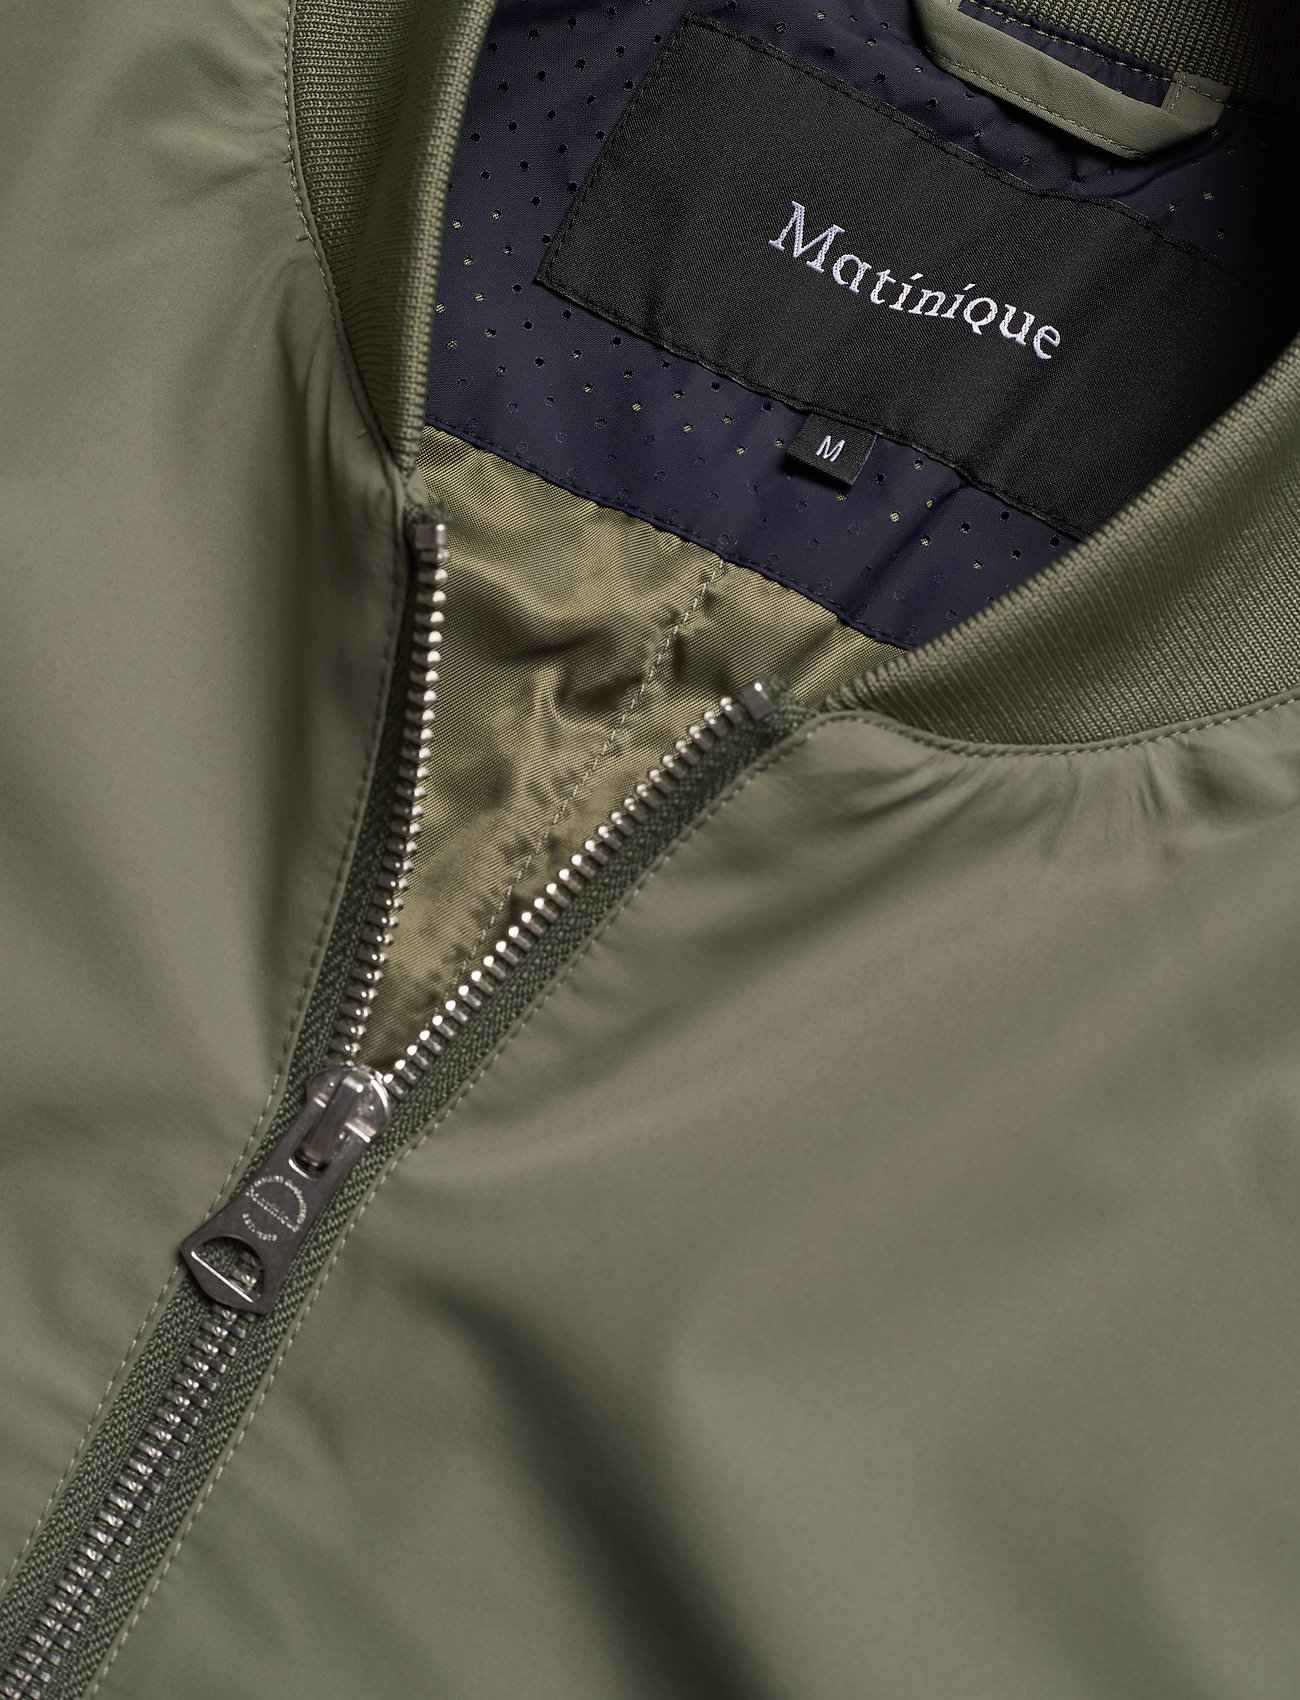 Mabroome N (Light Army) (52 €) - Matinique cymGq